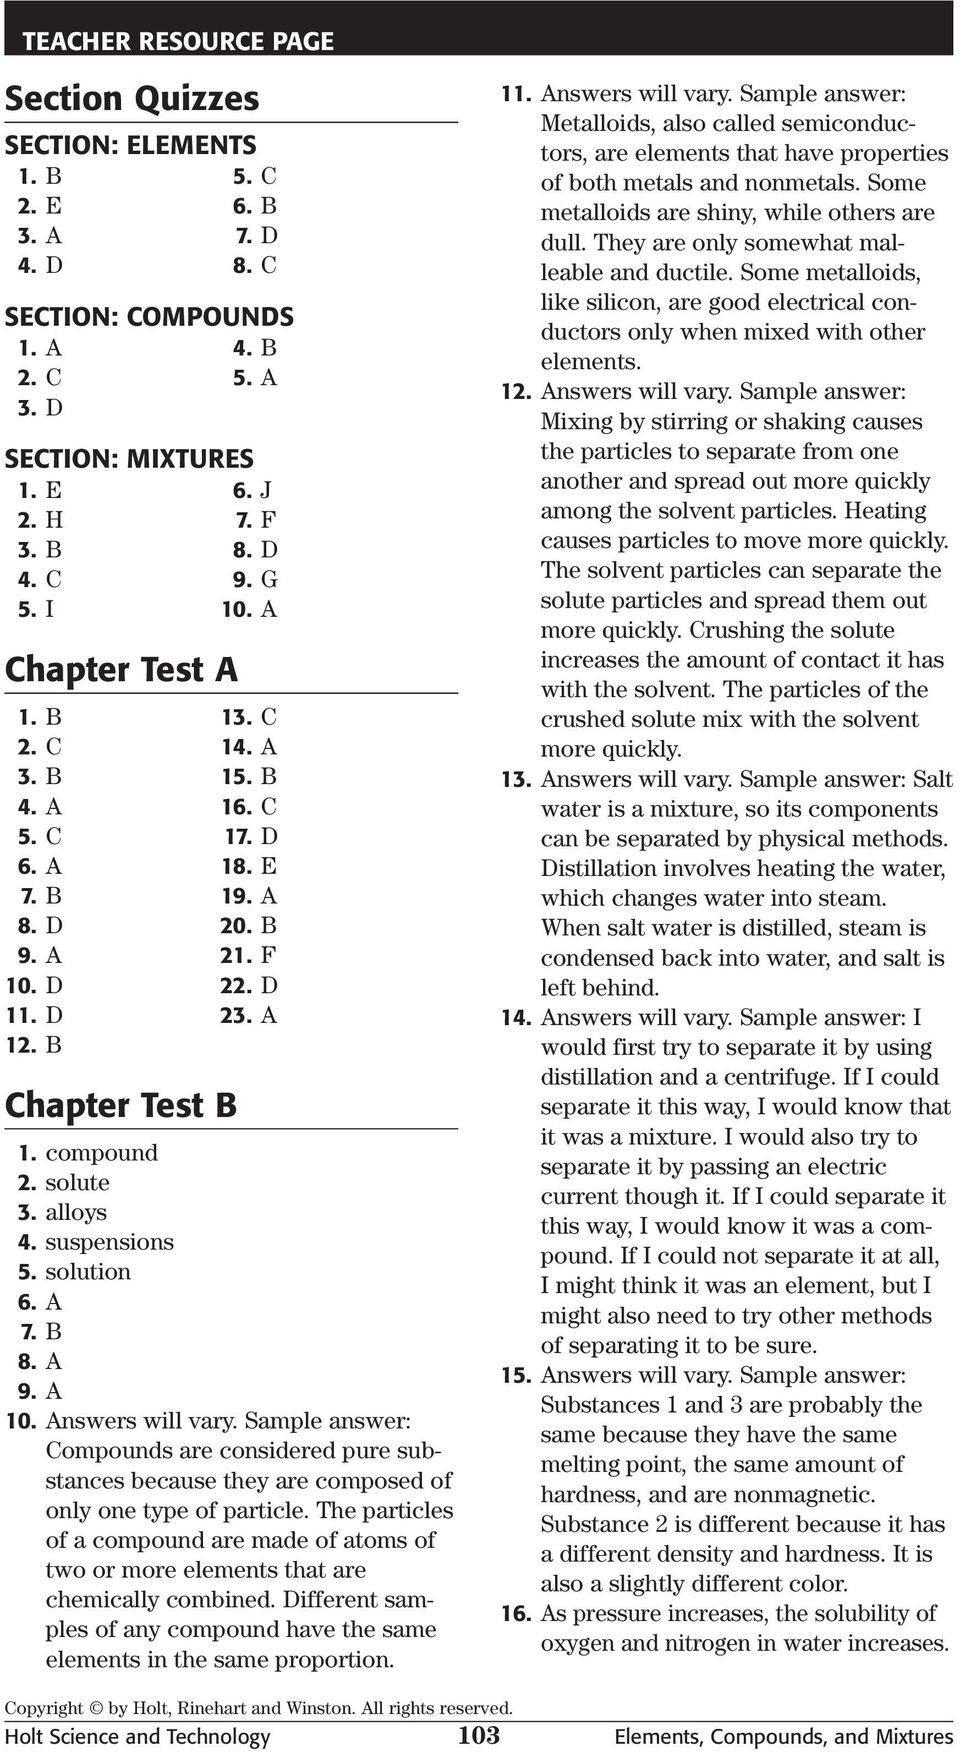 hight resolution of Chapter Test A. Elements